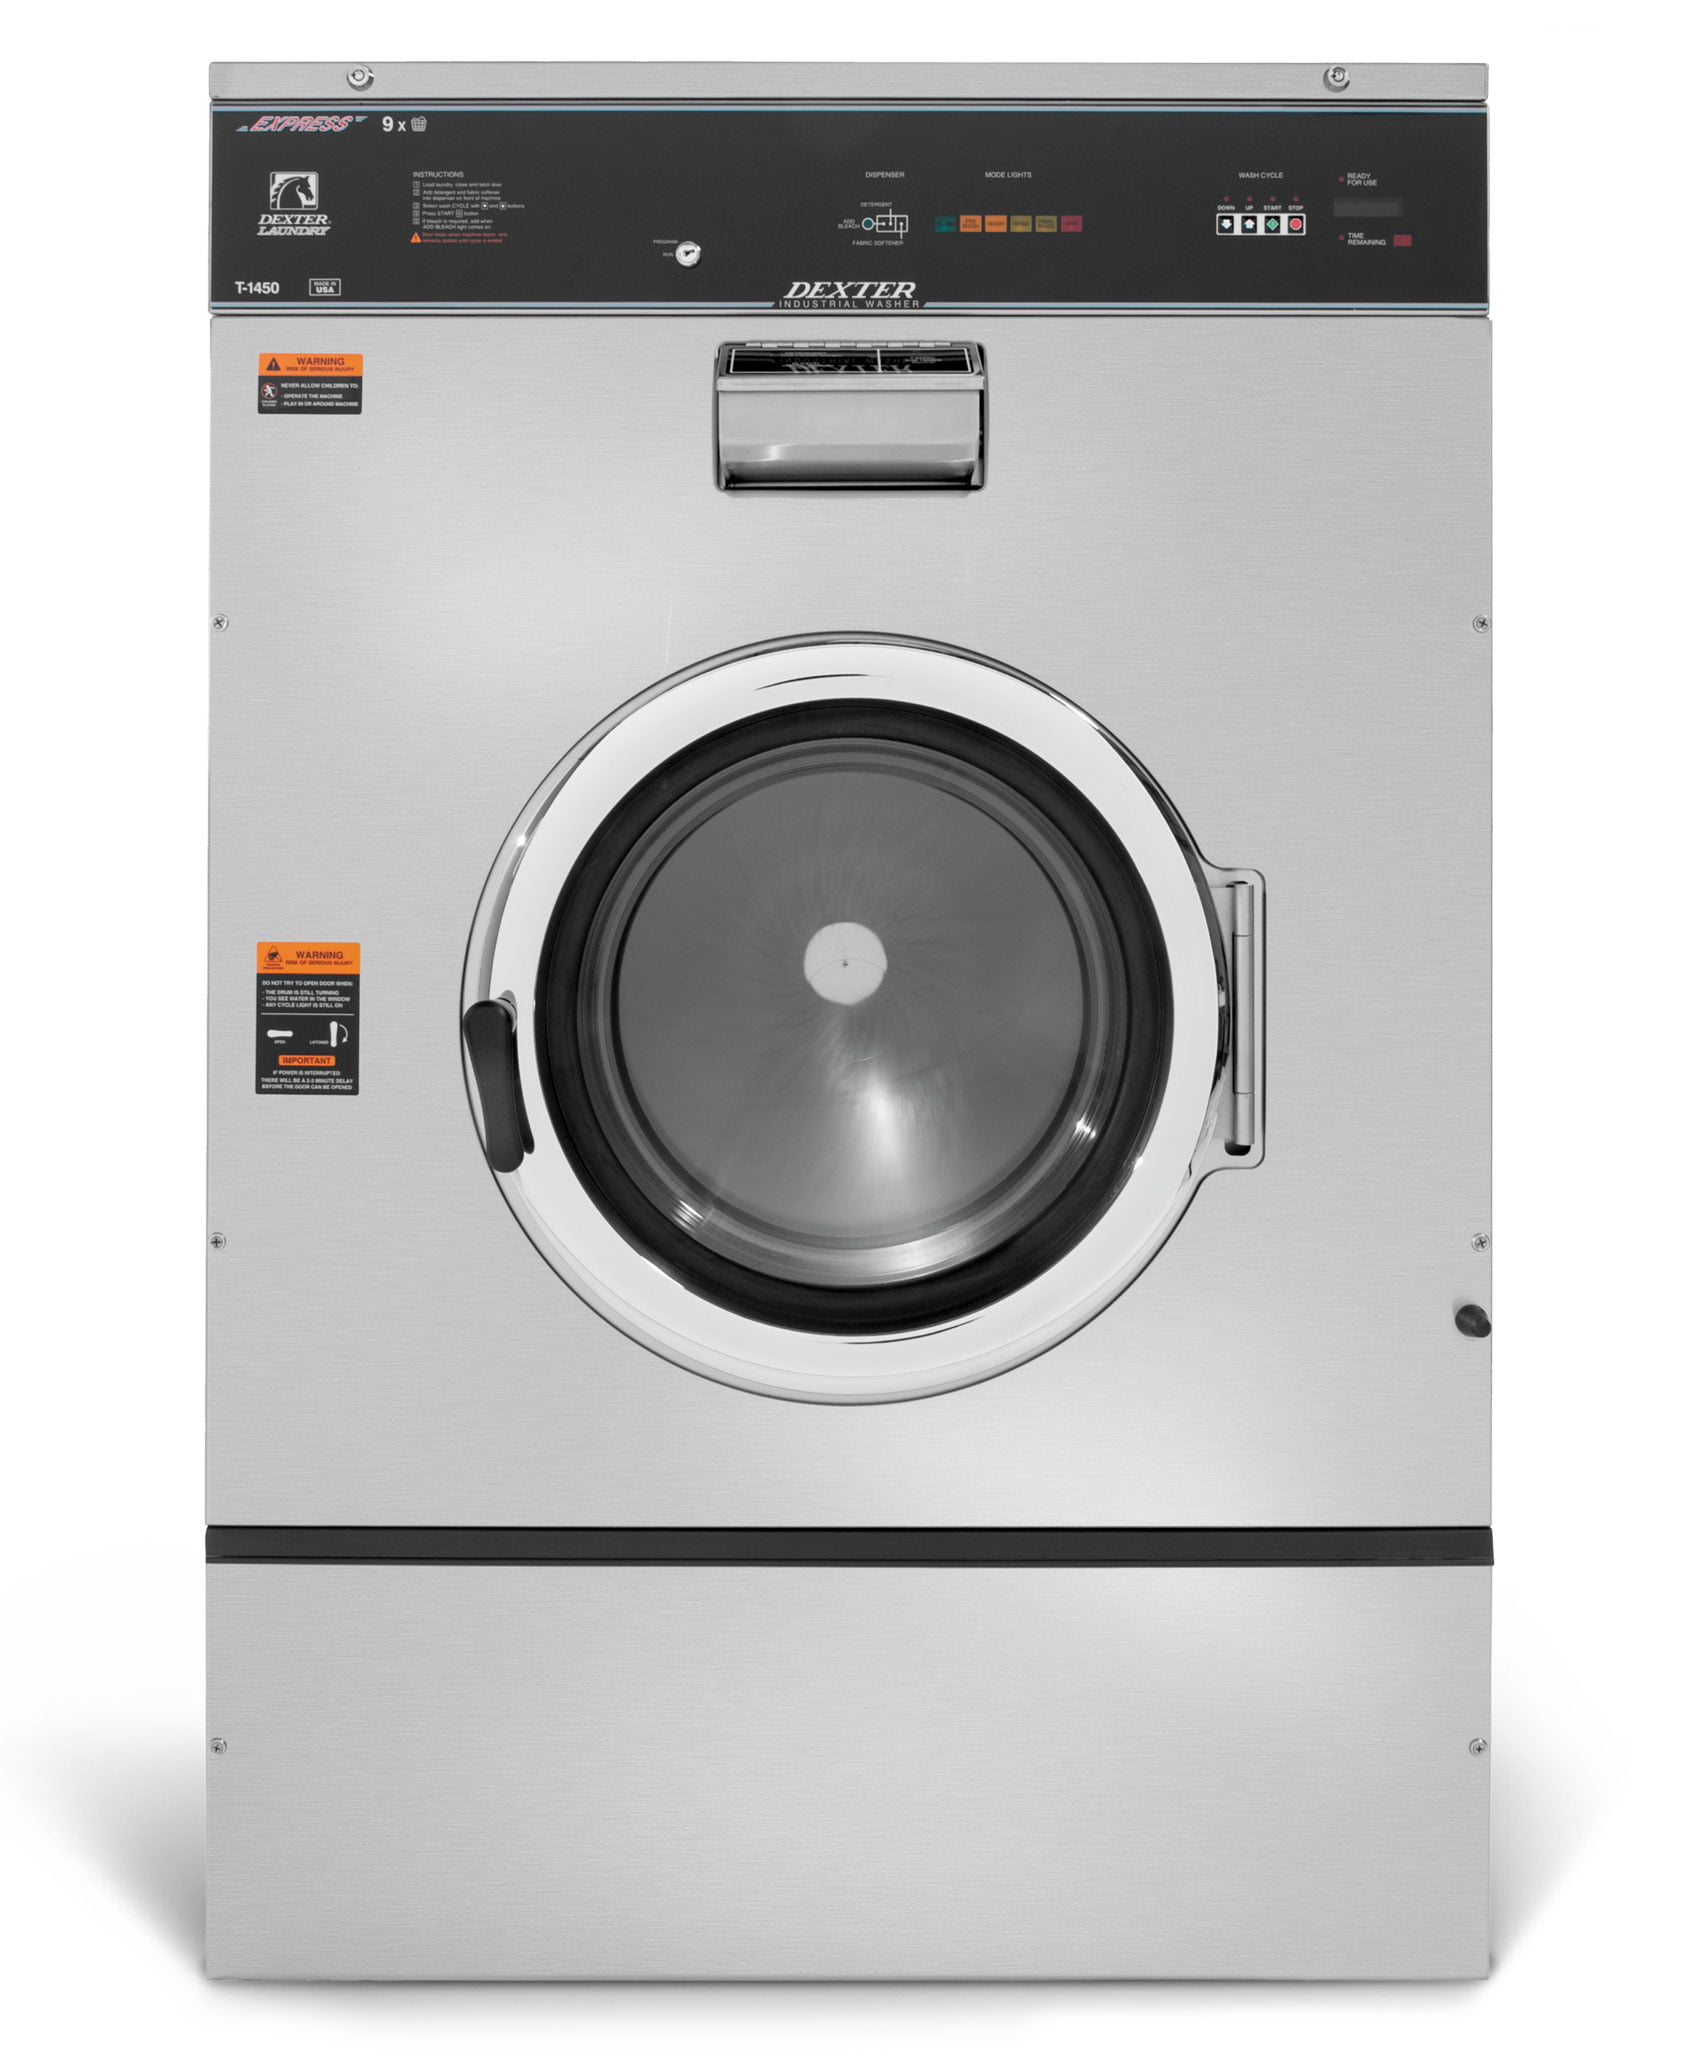 Dexter T-1450 6 Cycle Product Image